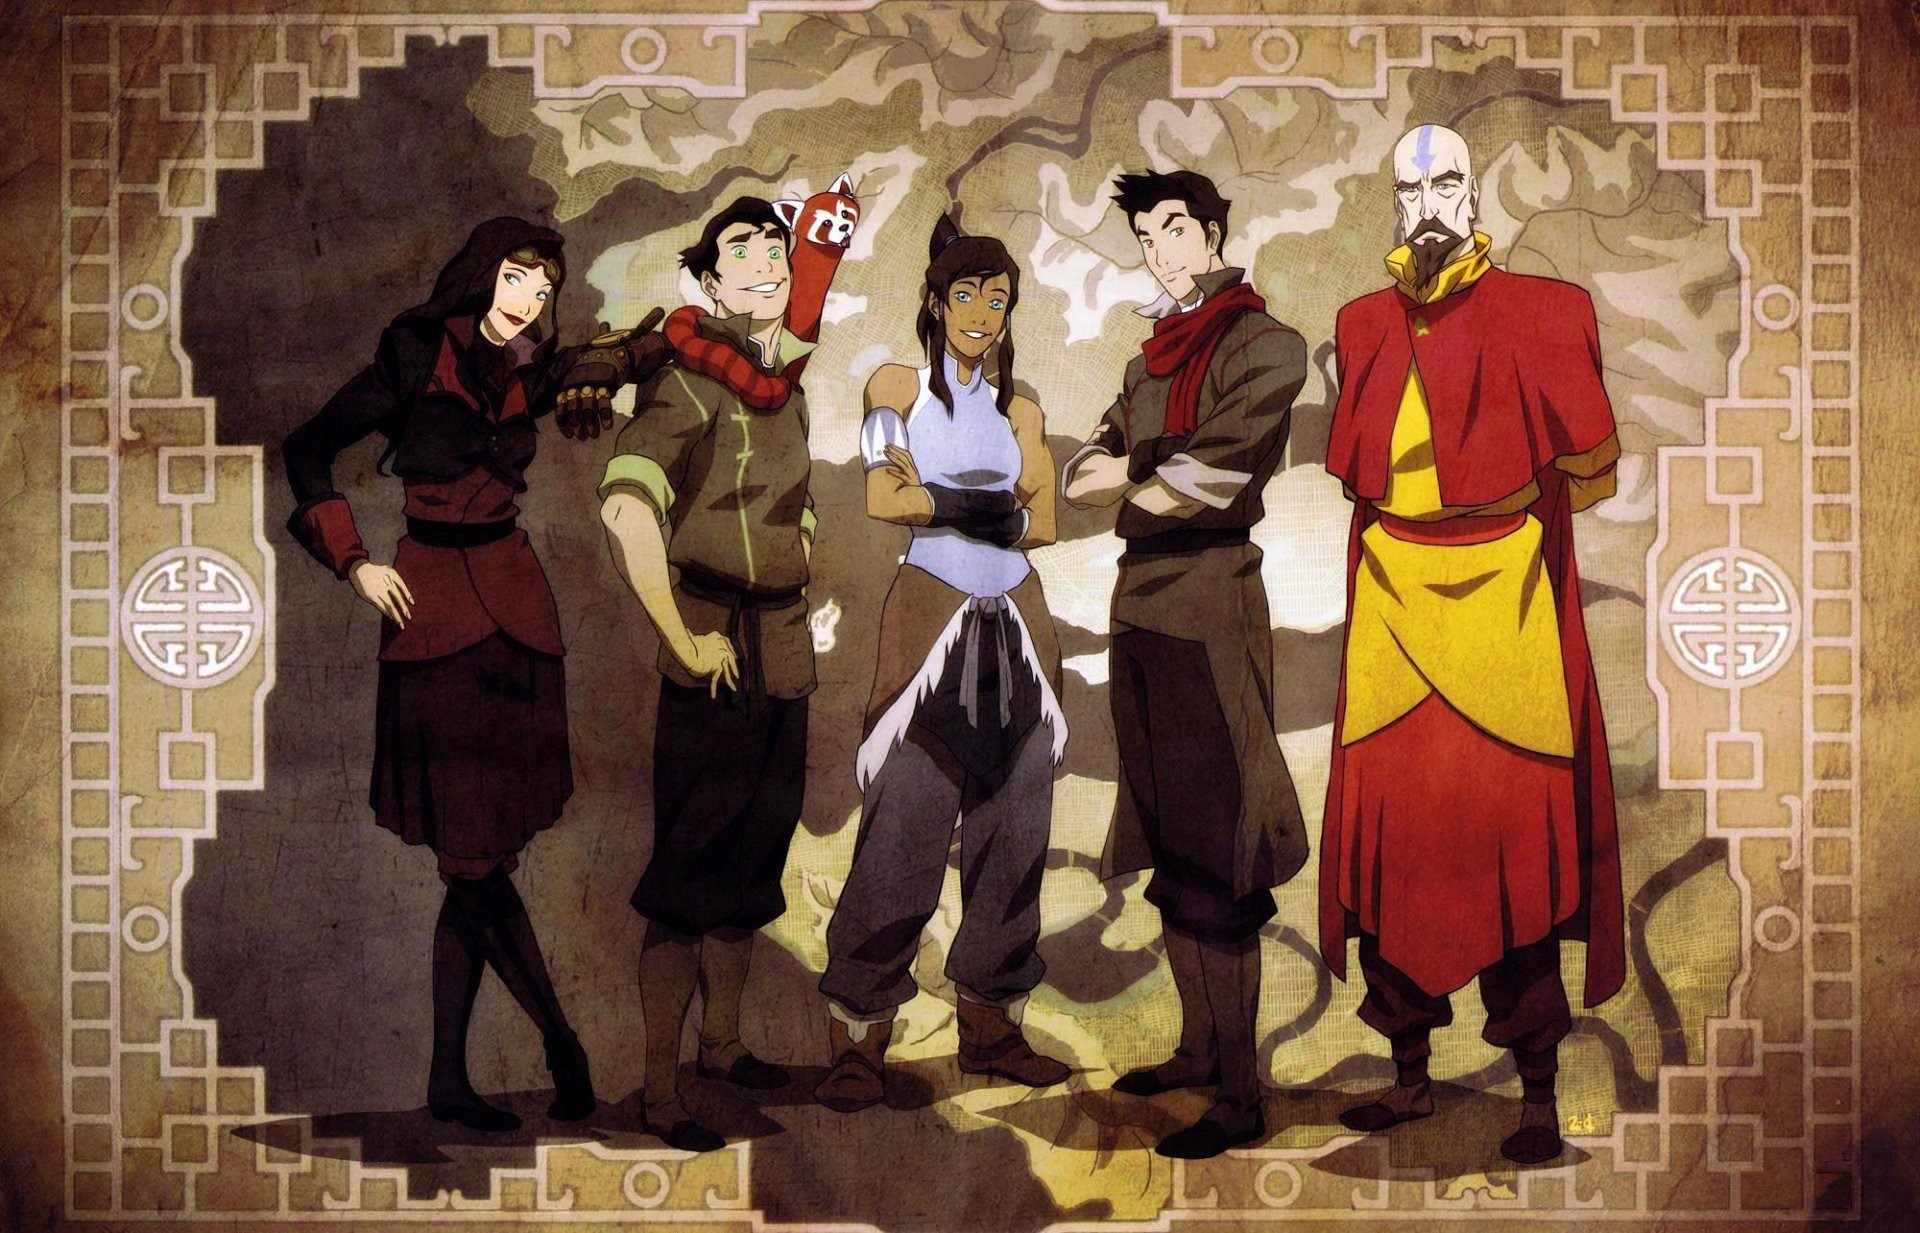 1920x1233 the legend of korra avatar: the legend of korra korra avatar avatar asami  sato bolin